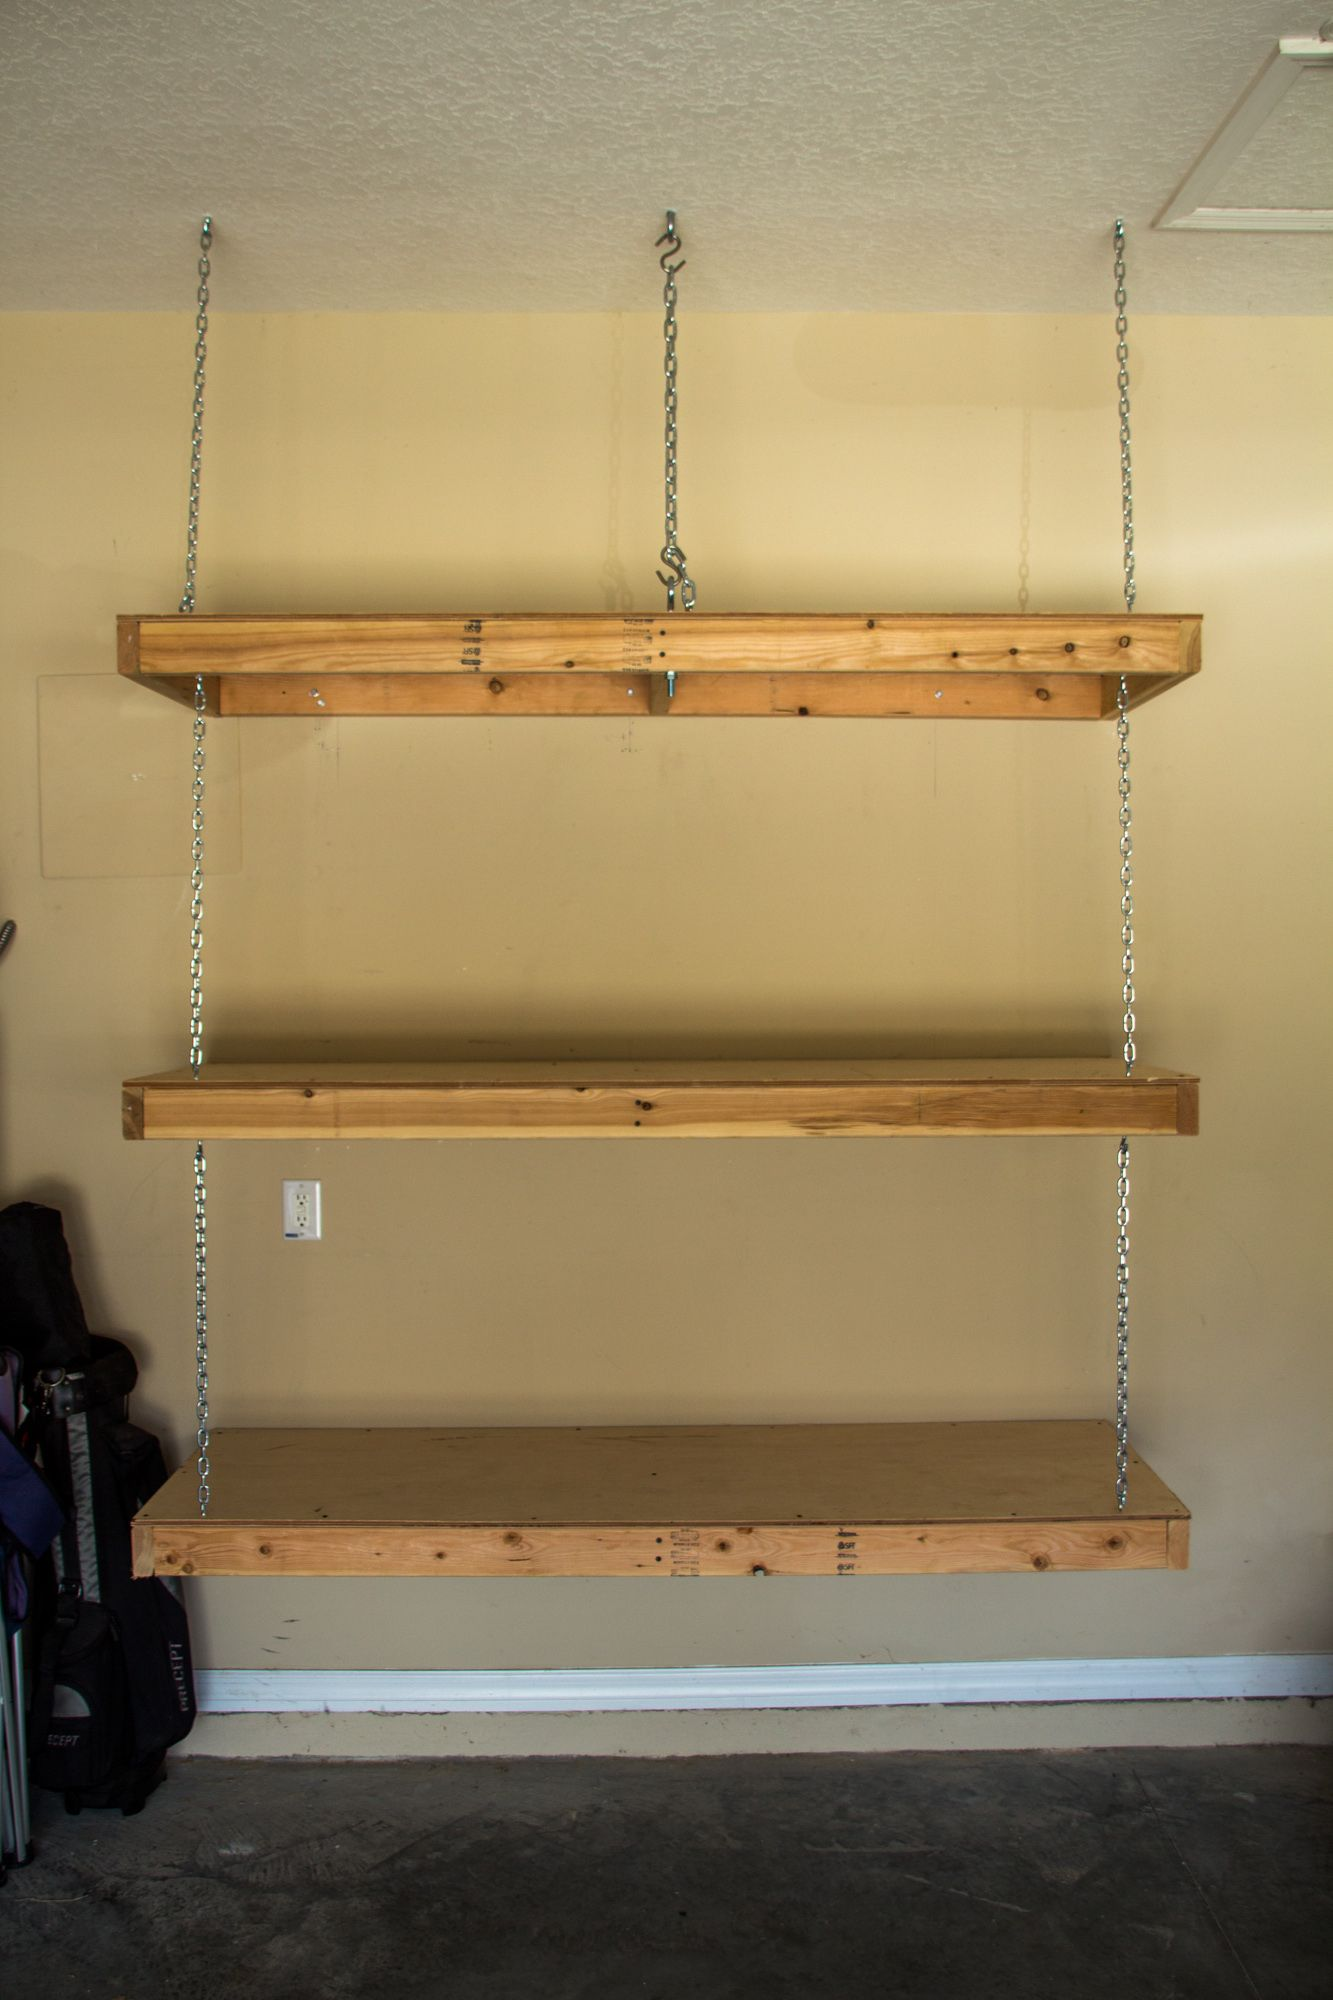 types storage garage ideas ceiling mounted shelves